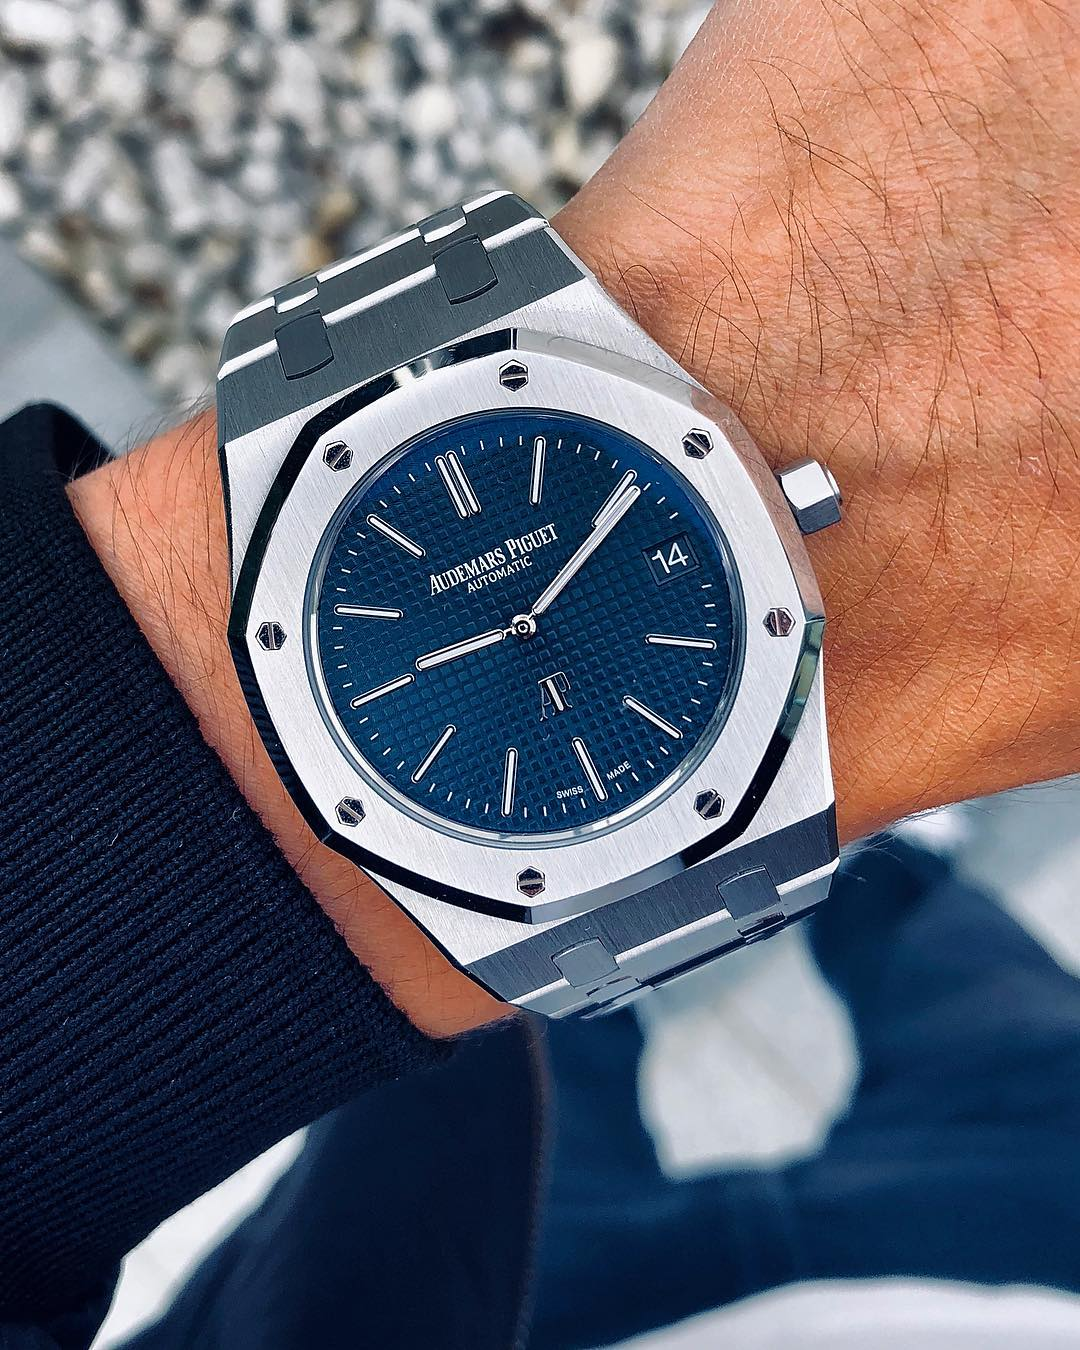 5 Audemars Piguet Royal Oak 15202ST by IG @watchrookiee - Image 2